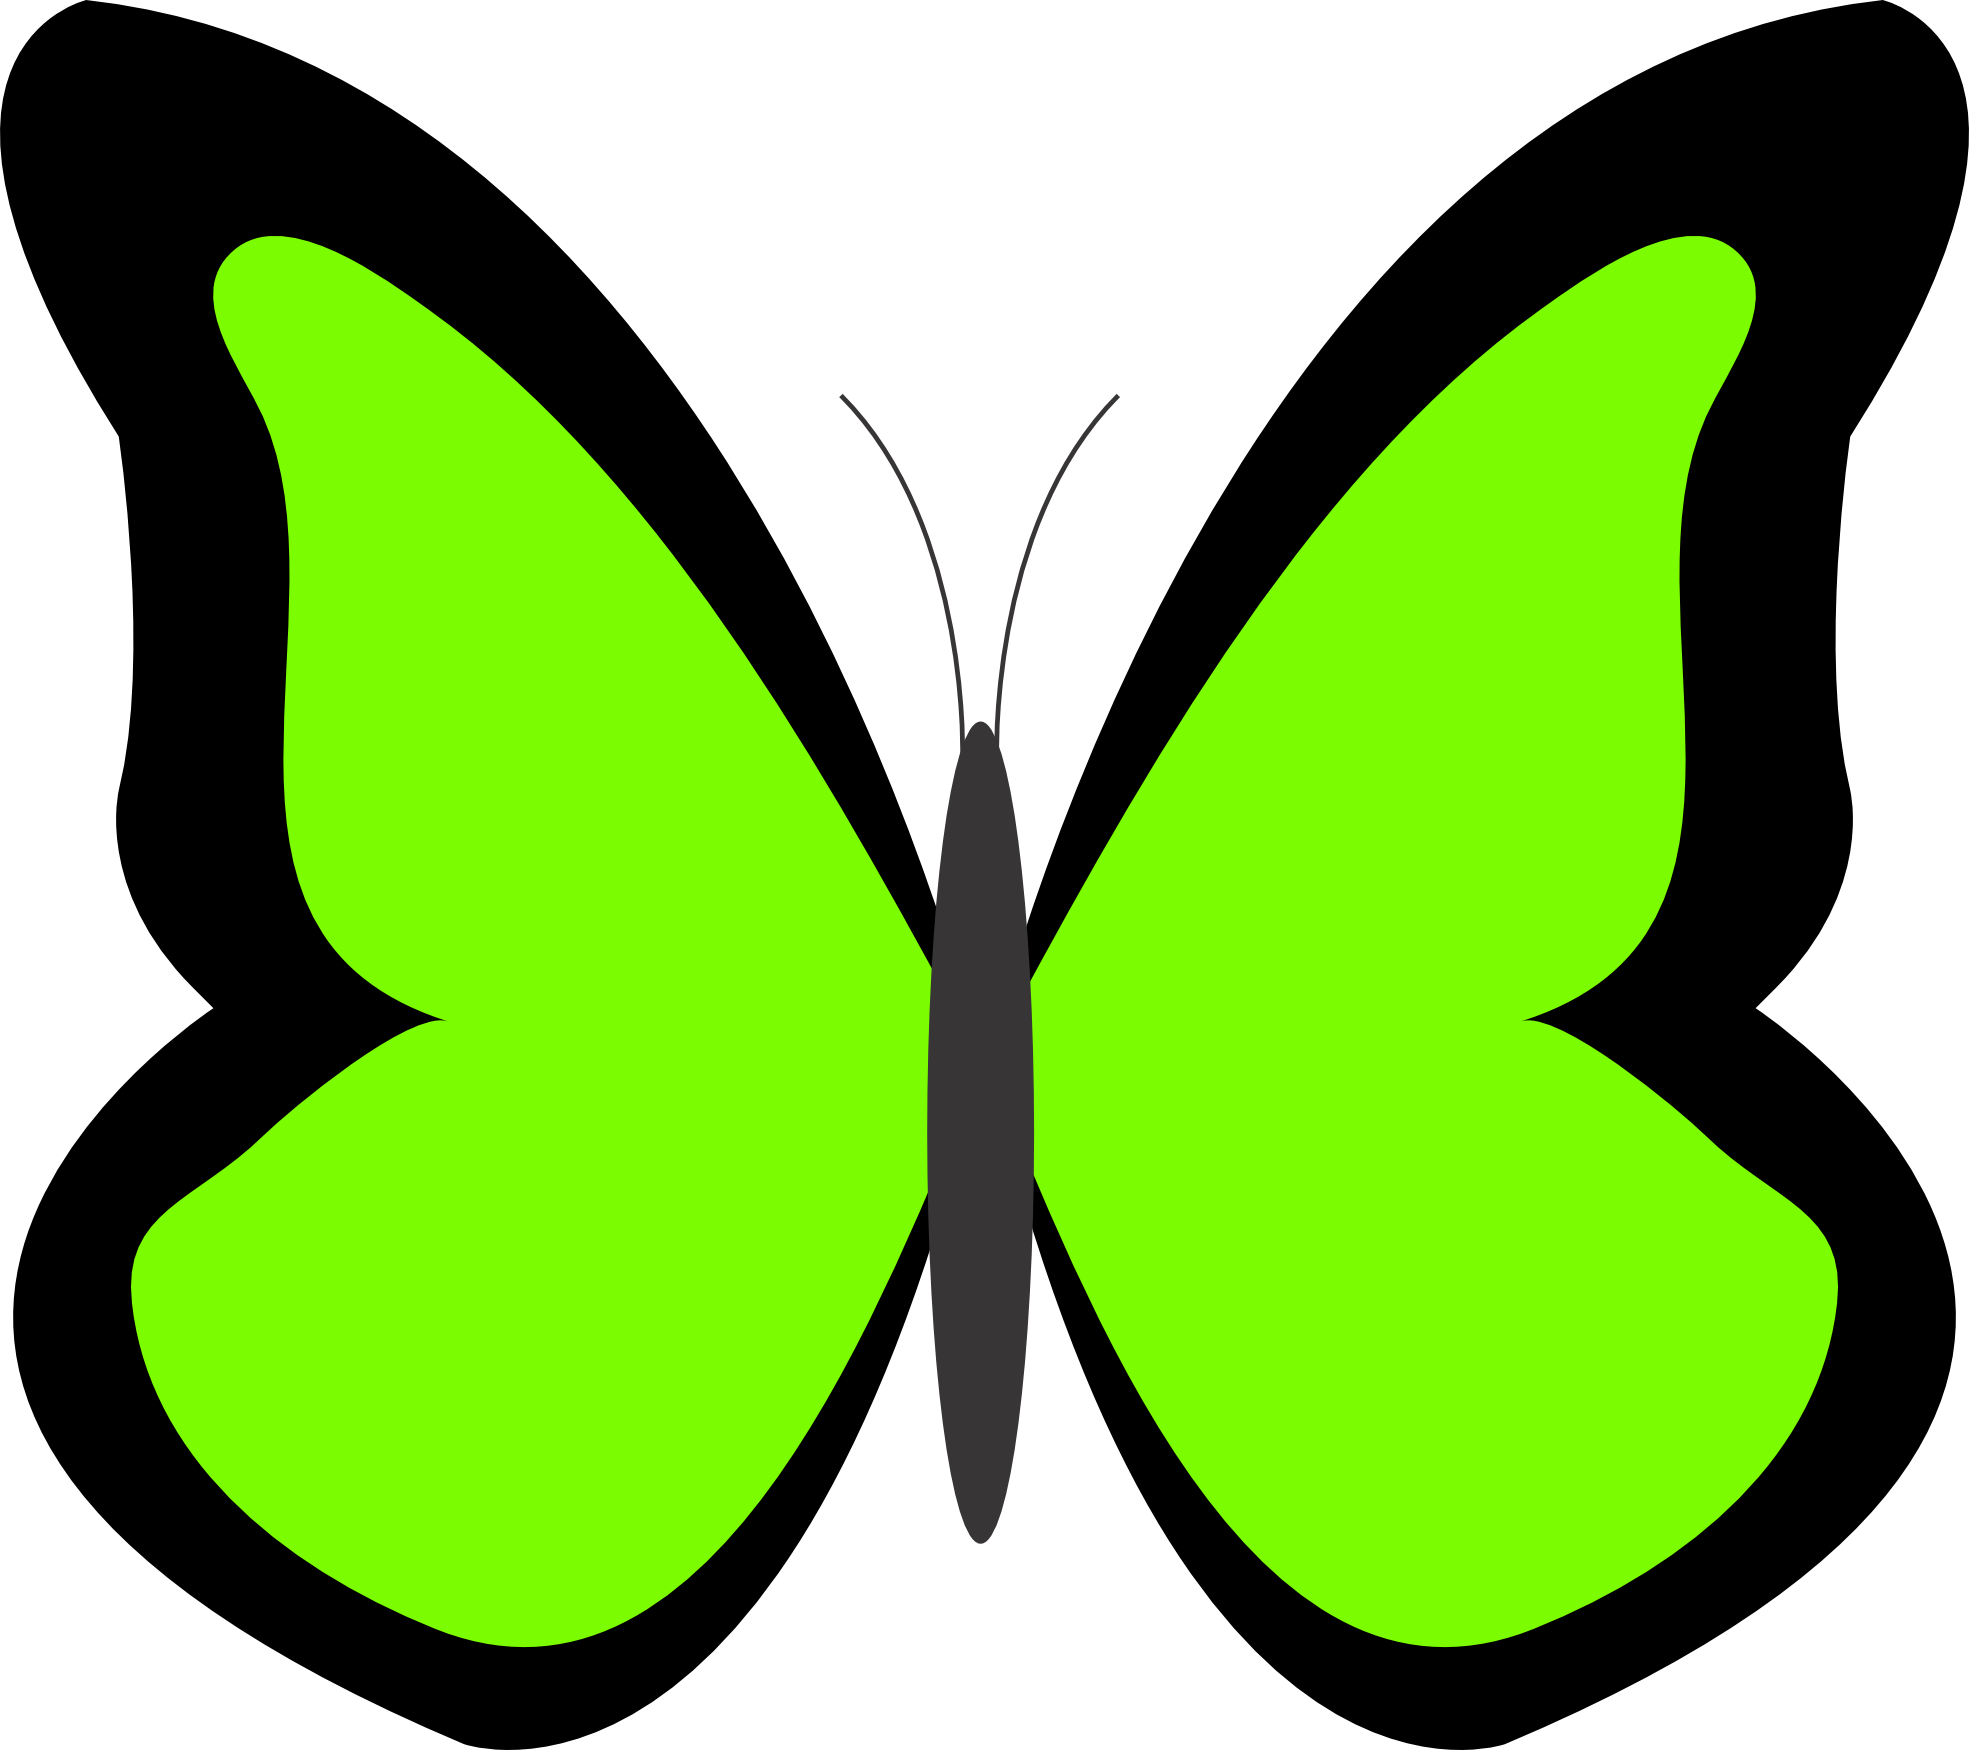 Green Butterfly Clipart - Free Clipart Images - ClipArt